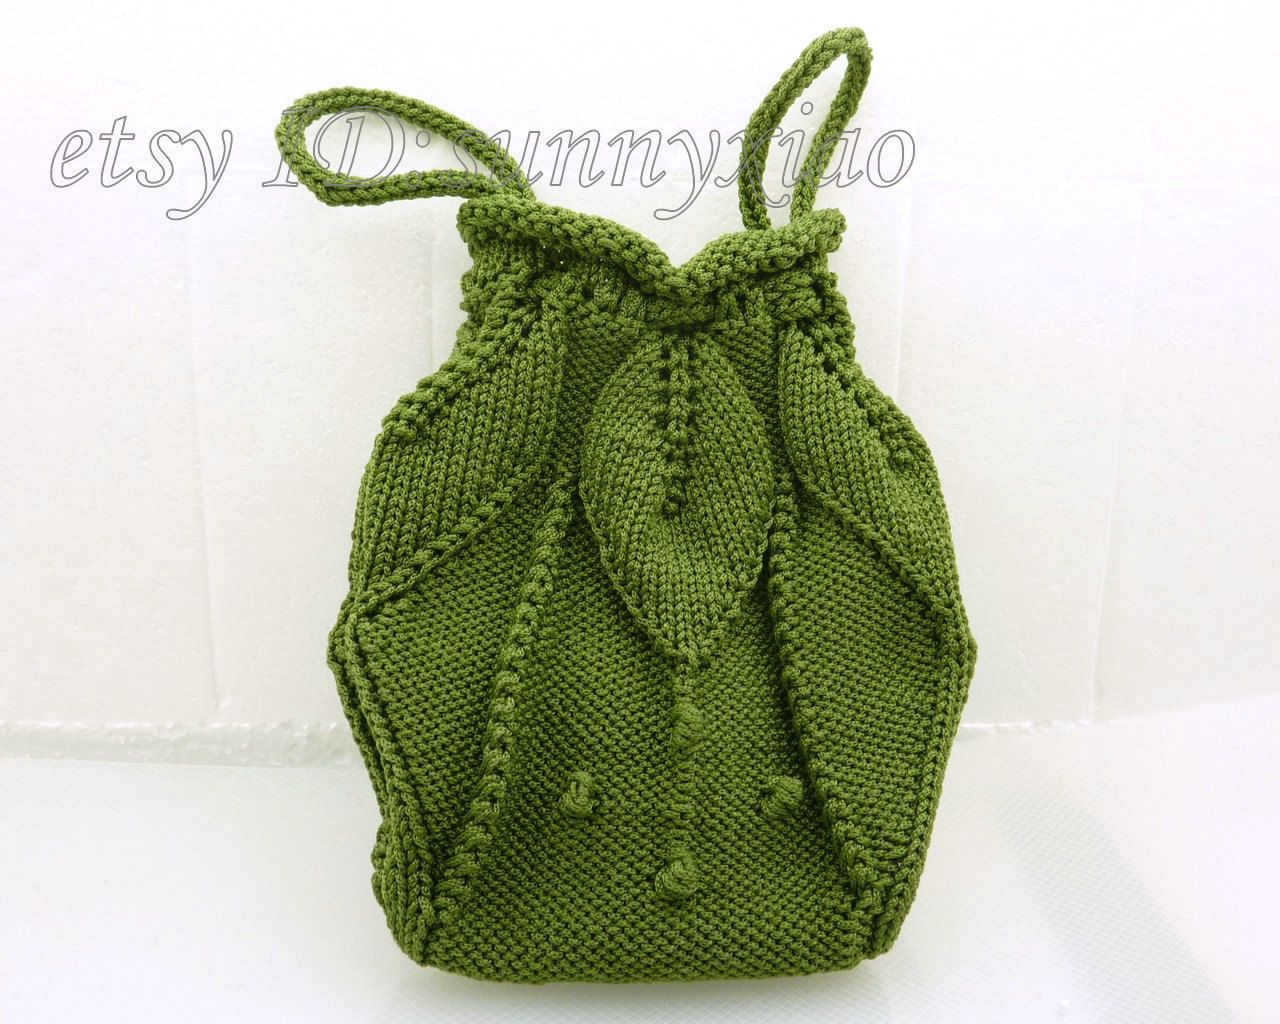 Grass Green Handmade Knitting Needle Bag by sunnyxiao on Etsy